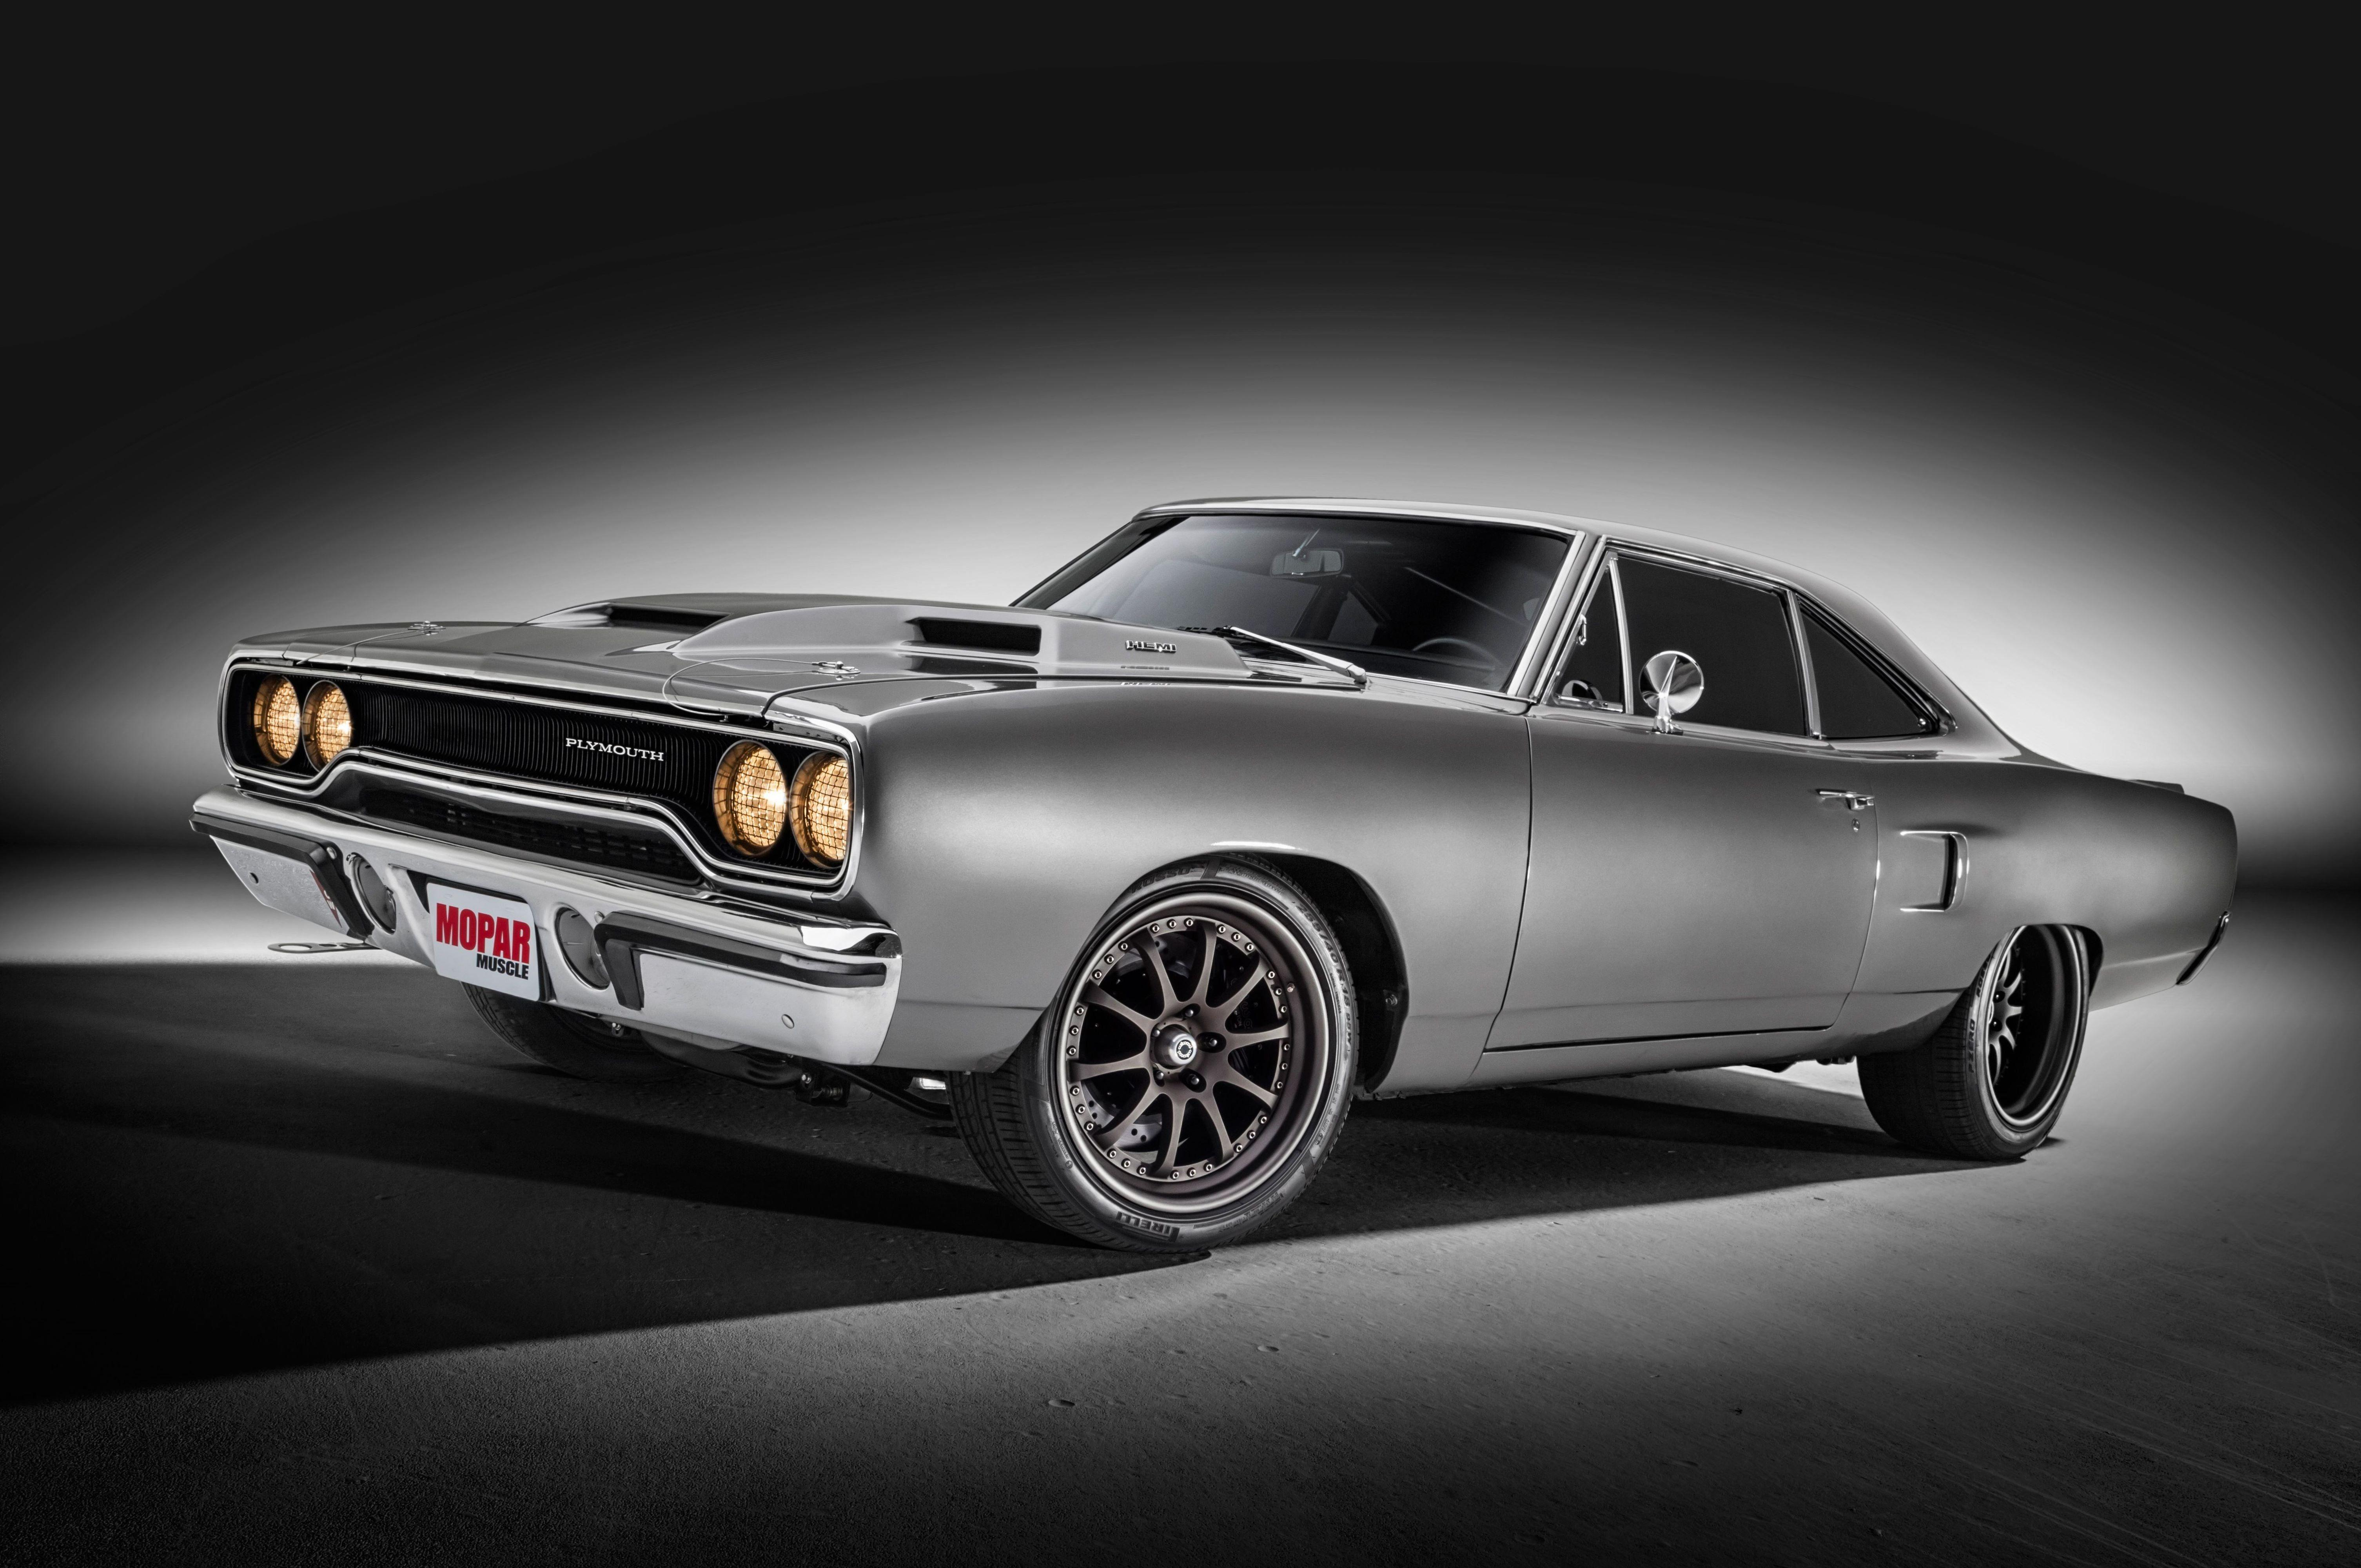 Plymouth Road Runner Wallpaper, Amazing 42 Wallpapers of Plymouth ...